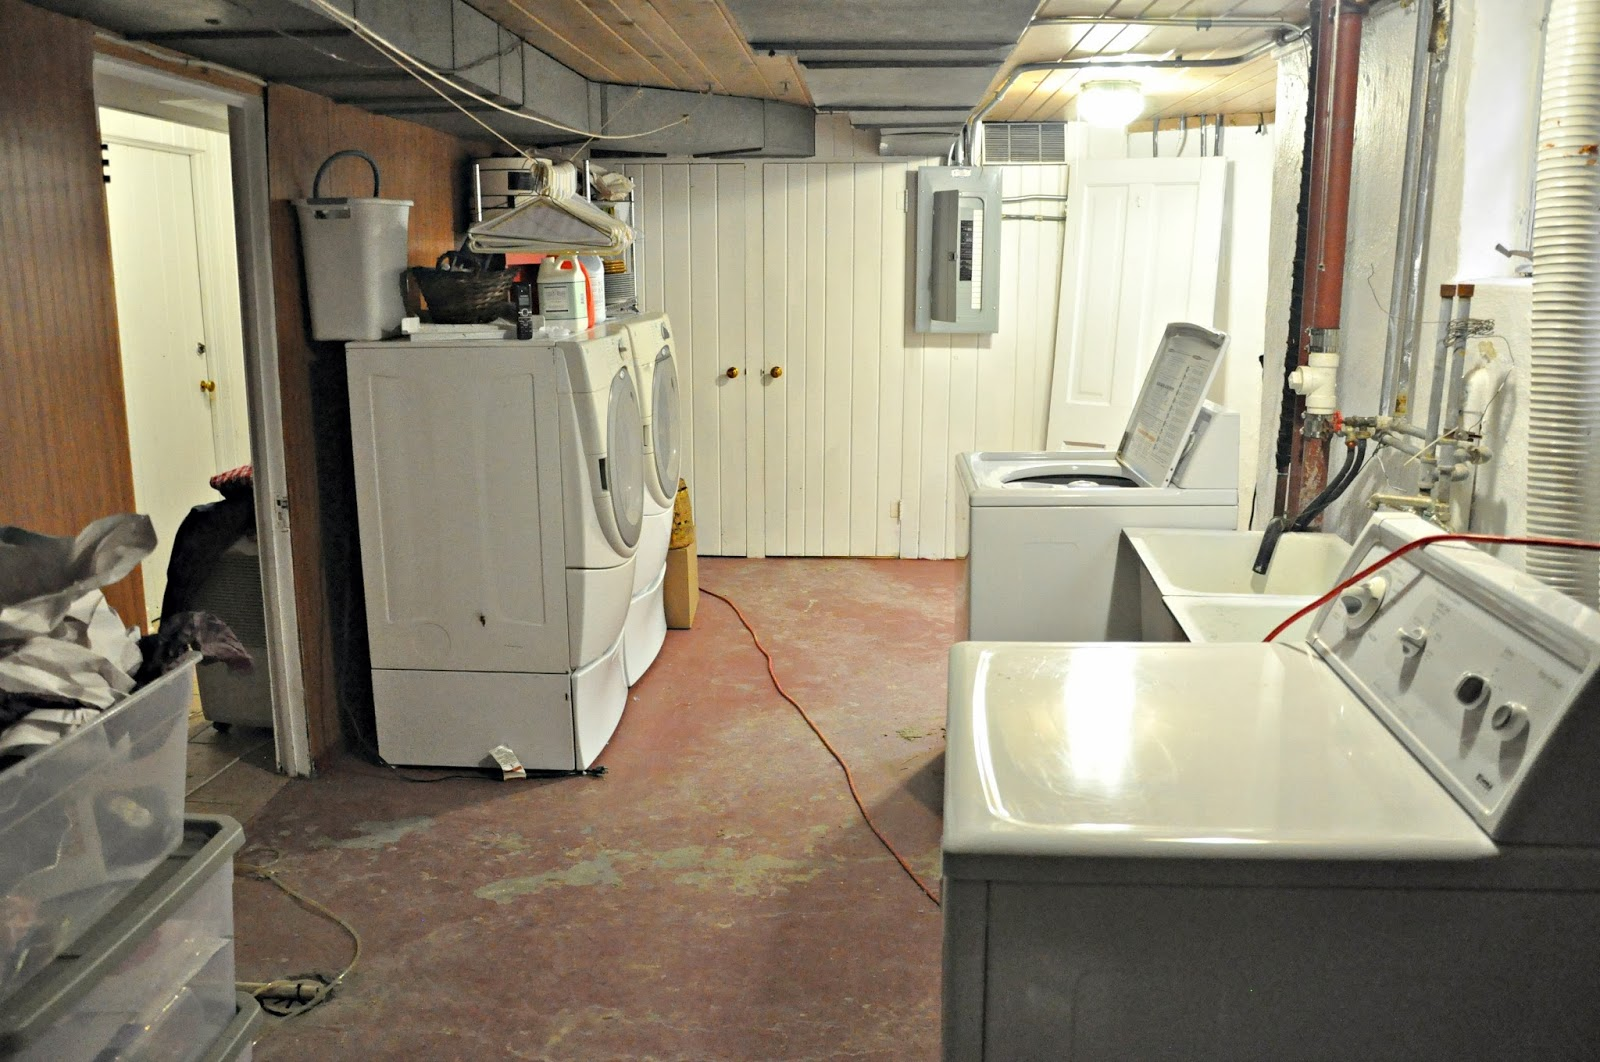 Basement Laundry Room Before And After Serendipity Refined Bl...